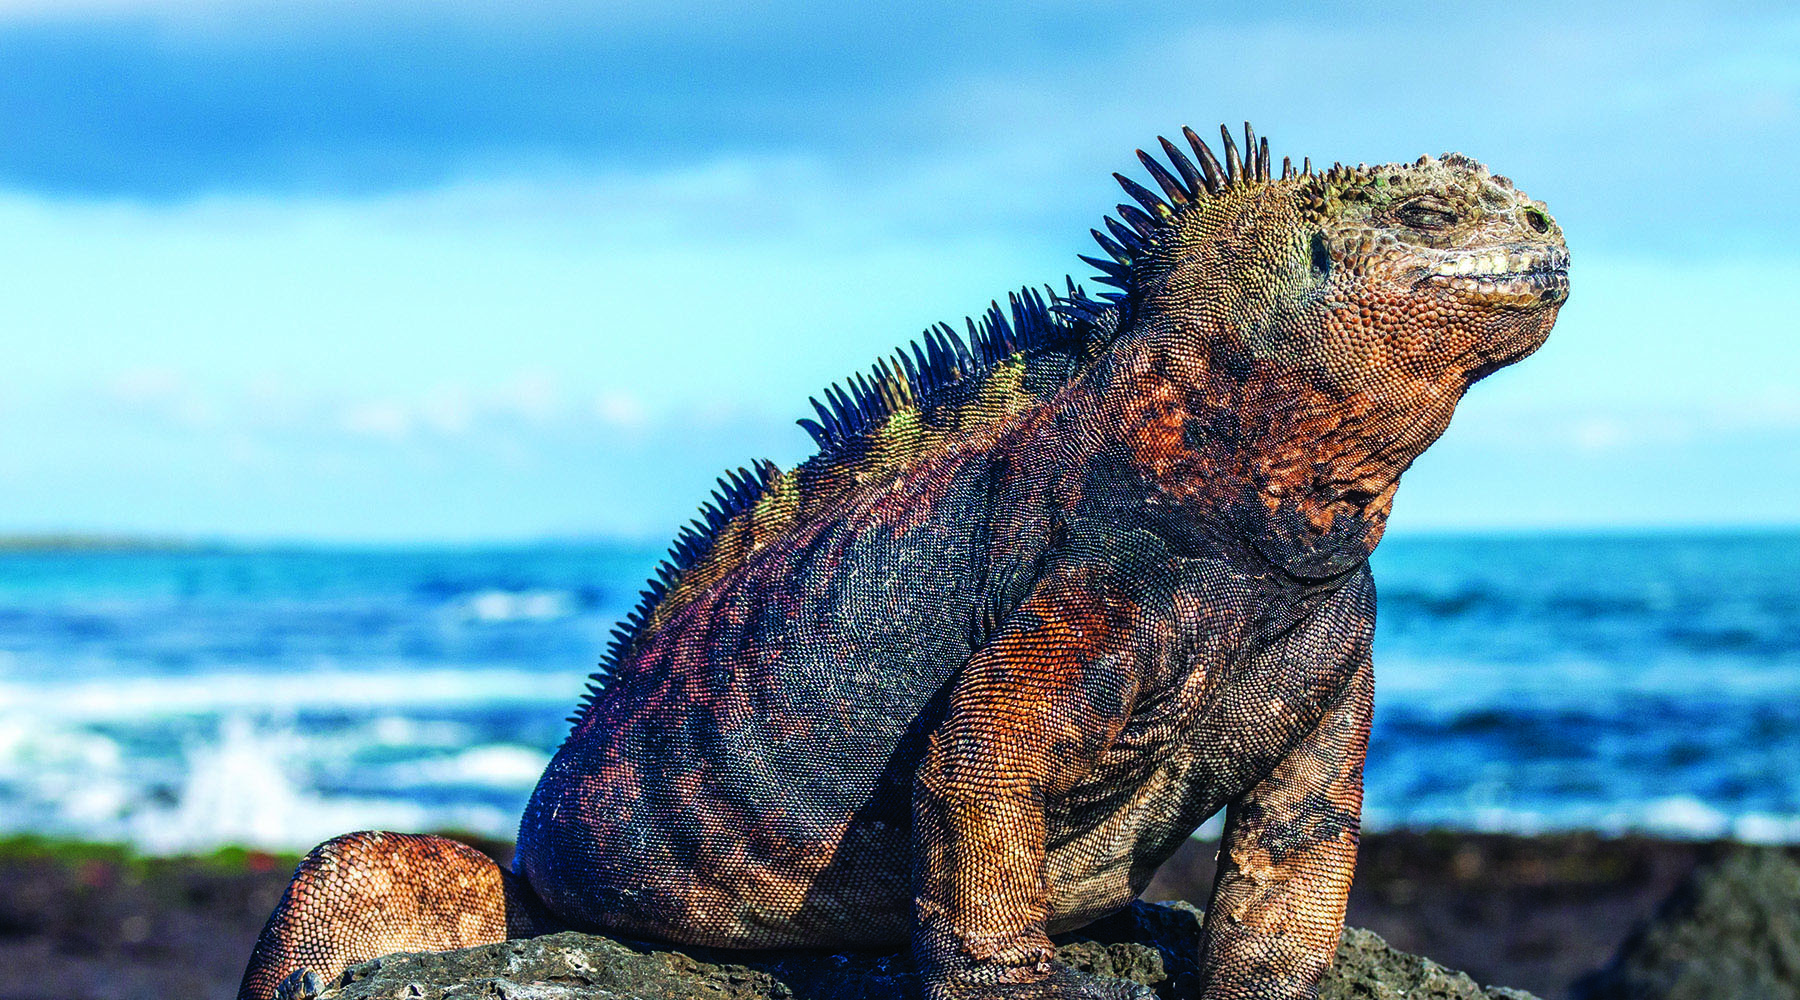 10-Night S.america & 10-Night Post Celebrity Galapagos